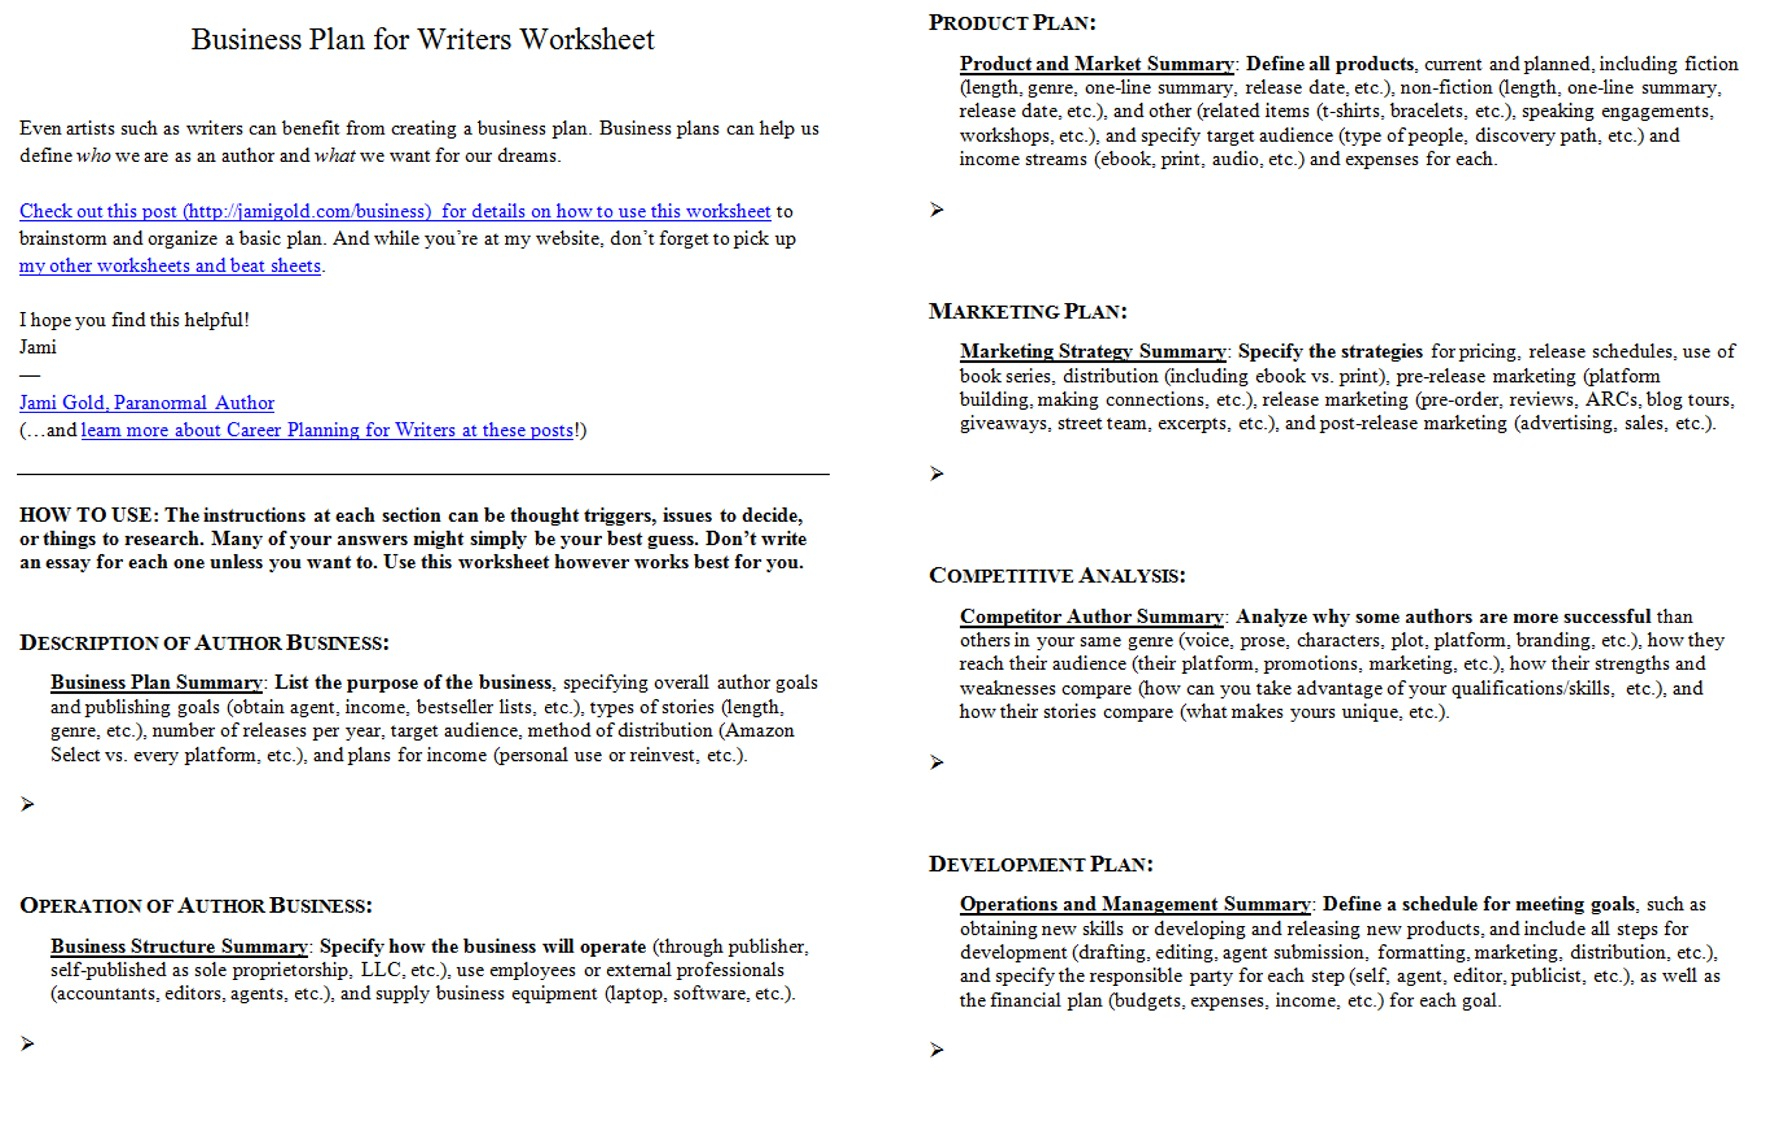 Weirdmailus  Surprising Worksheets For Writers  Jami Gold Paranormal Author With Excellent Screen Shot Of Both Pages Of The Business Plan For Writers Worksheet With Appealing Solving Rational Equations Word Problems Worksheet Also Measure Of Central Tendency Worksheet In Addition Terminal Velocity Worksheet And Physics Worksheet Vectors As Well As Language Art Worksheets Additionally Th Grade Measurement Worksheets From Jamigoldcom With Weirdmailus  Excellent Worksheets For Writers  Jami Gold Paranormal Author With Appealing Screen Shot Of Both Pages Of The Business Plan For Writers Worksheet And Surprising Solving Rational Equations Word Problems Worksheet Also Measure Of Central Tendency Worksheet In Addition Terminal Velocity Worksheet From Jamigoldcom